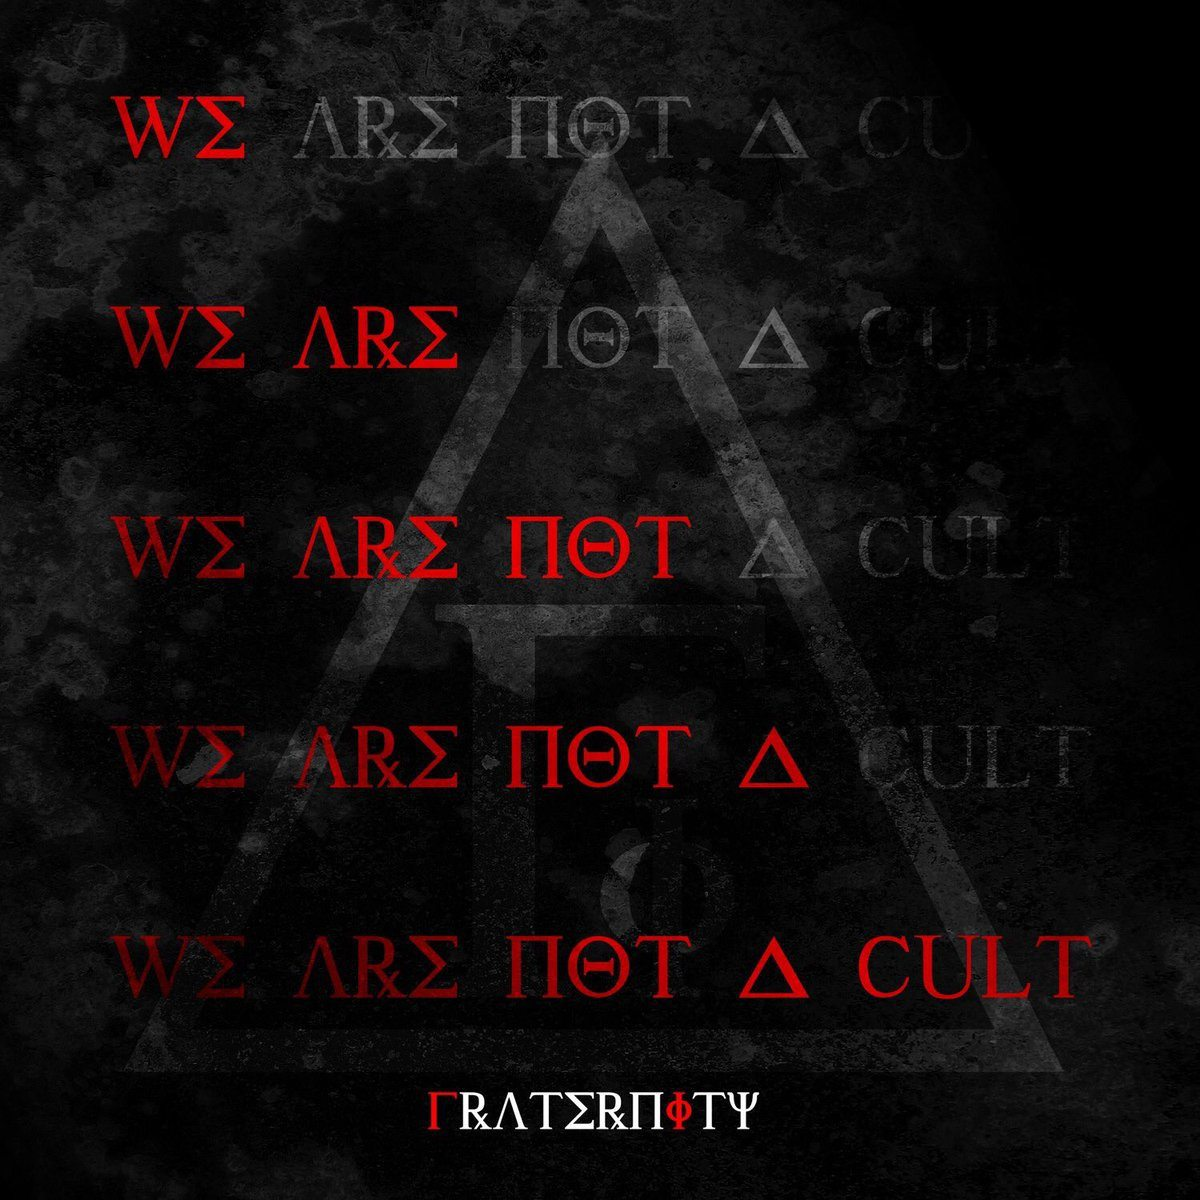 Fraternity We Are Not a Cult